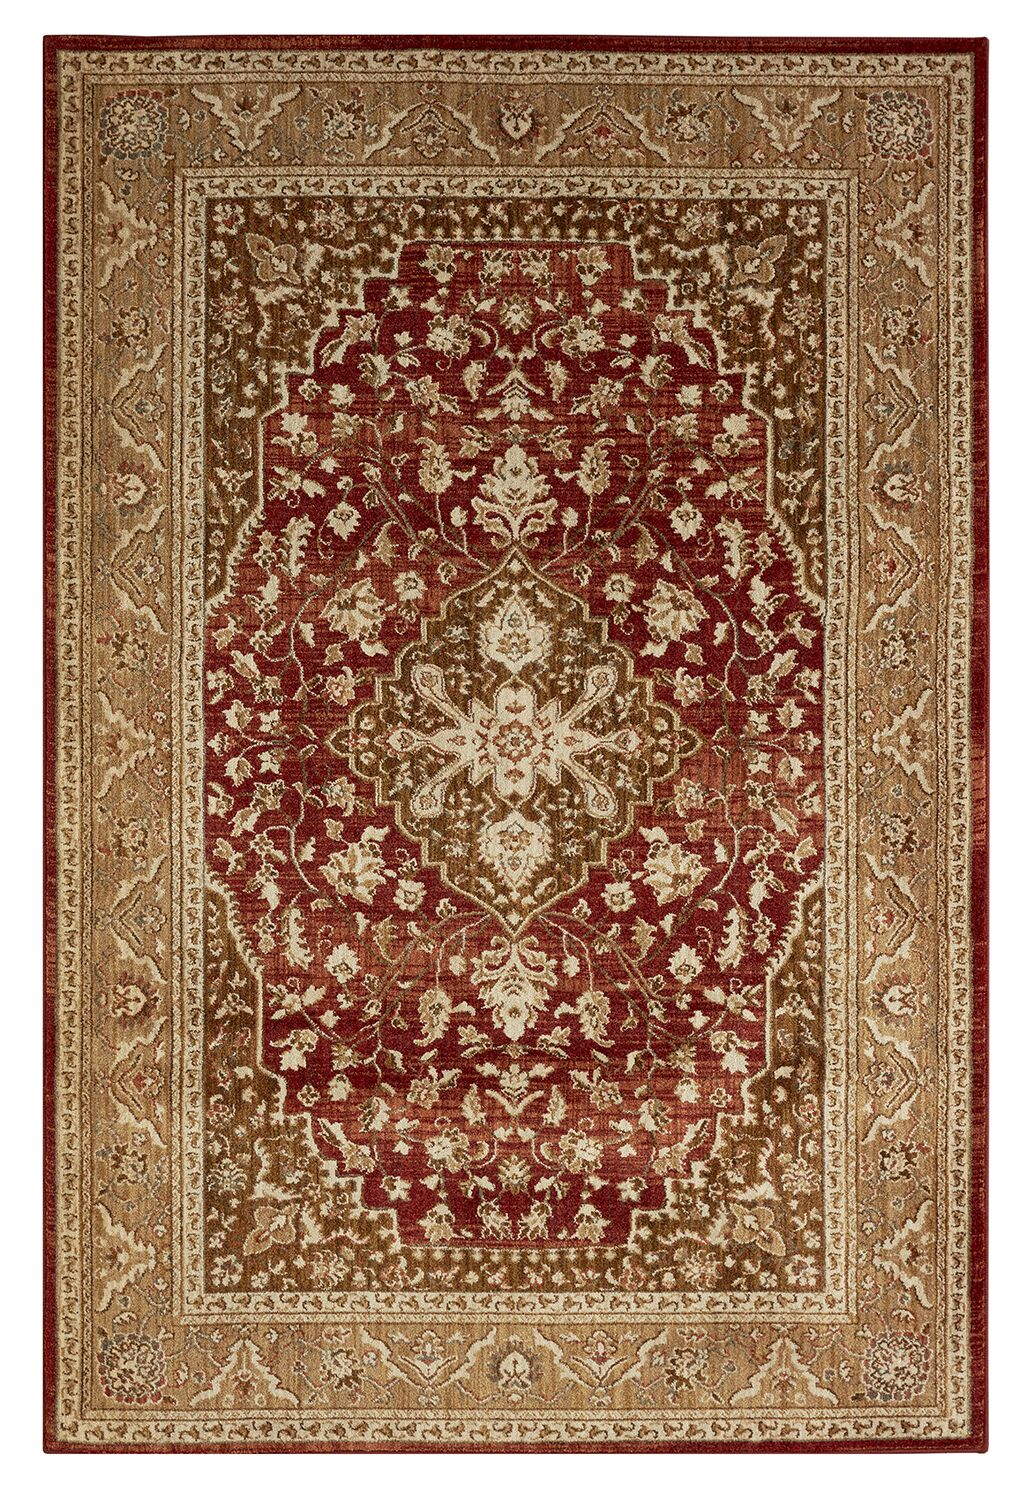 Lakemont Machine Woven Red Area Rug Rug Size: Rectangle 8' x 10'